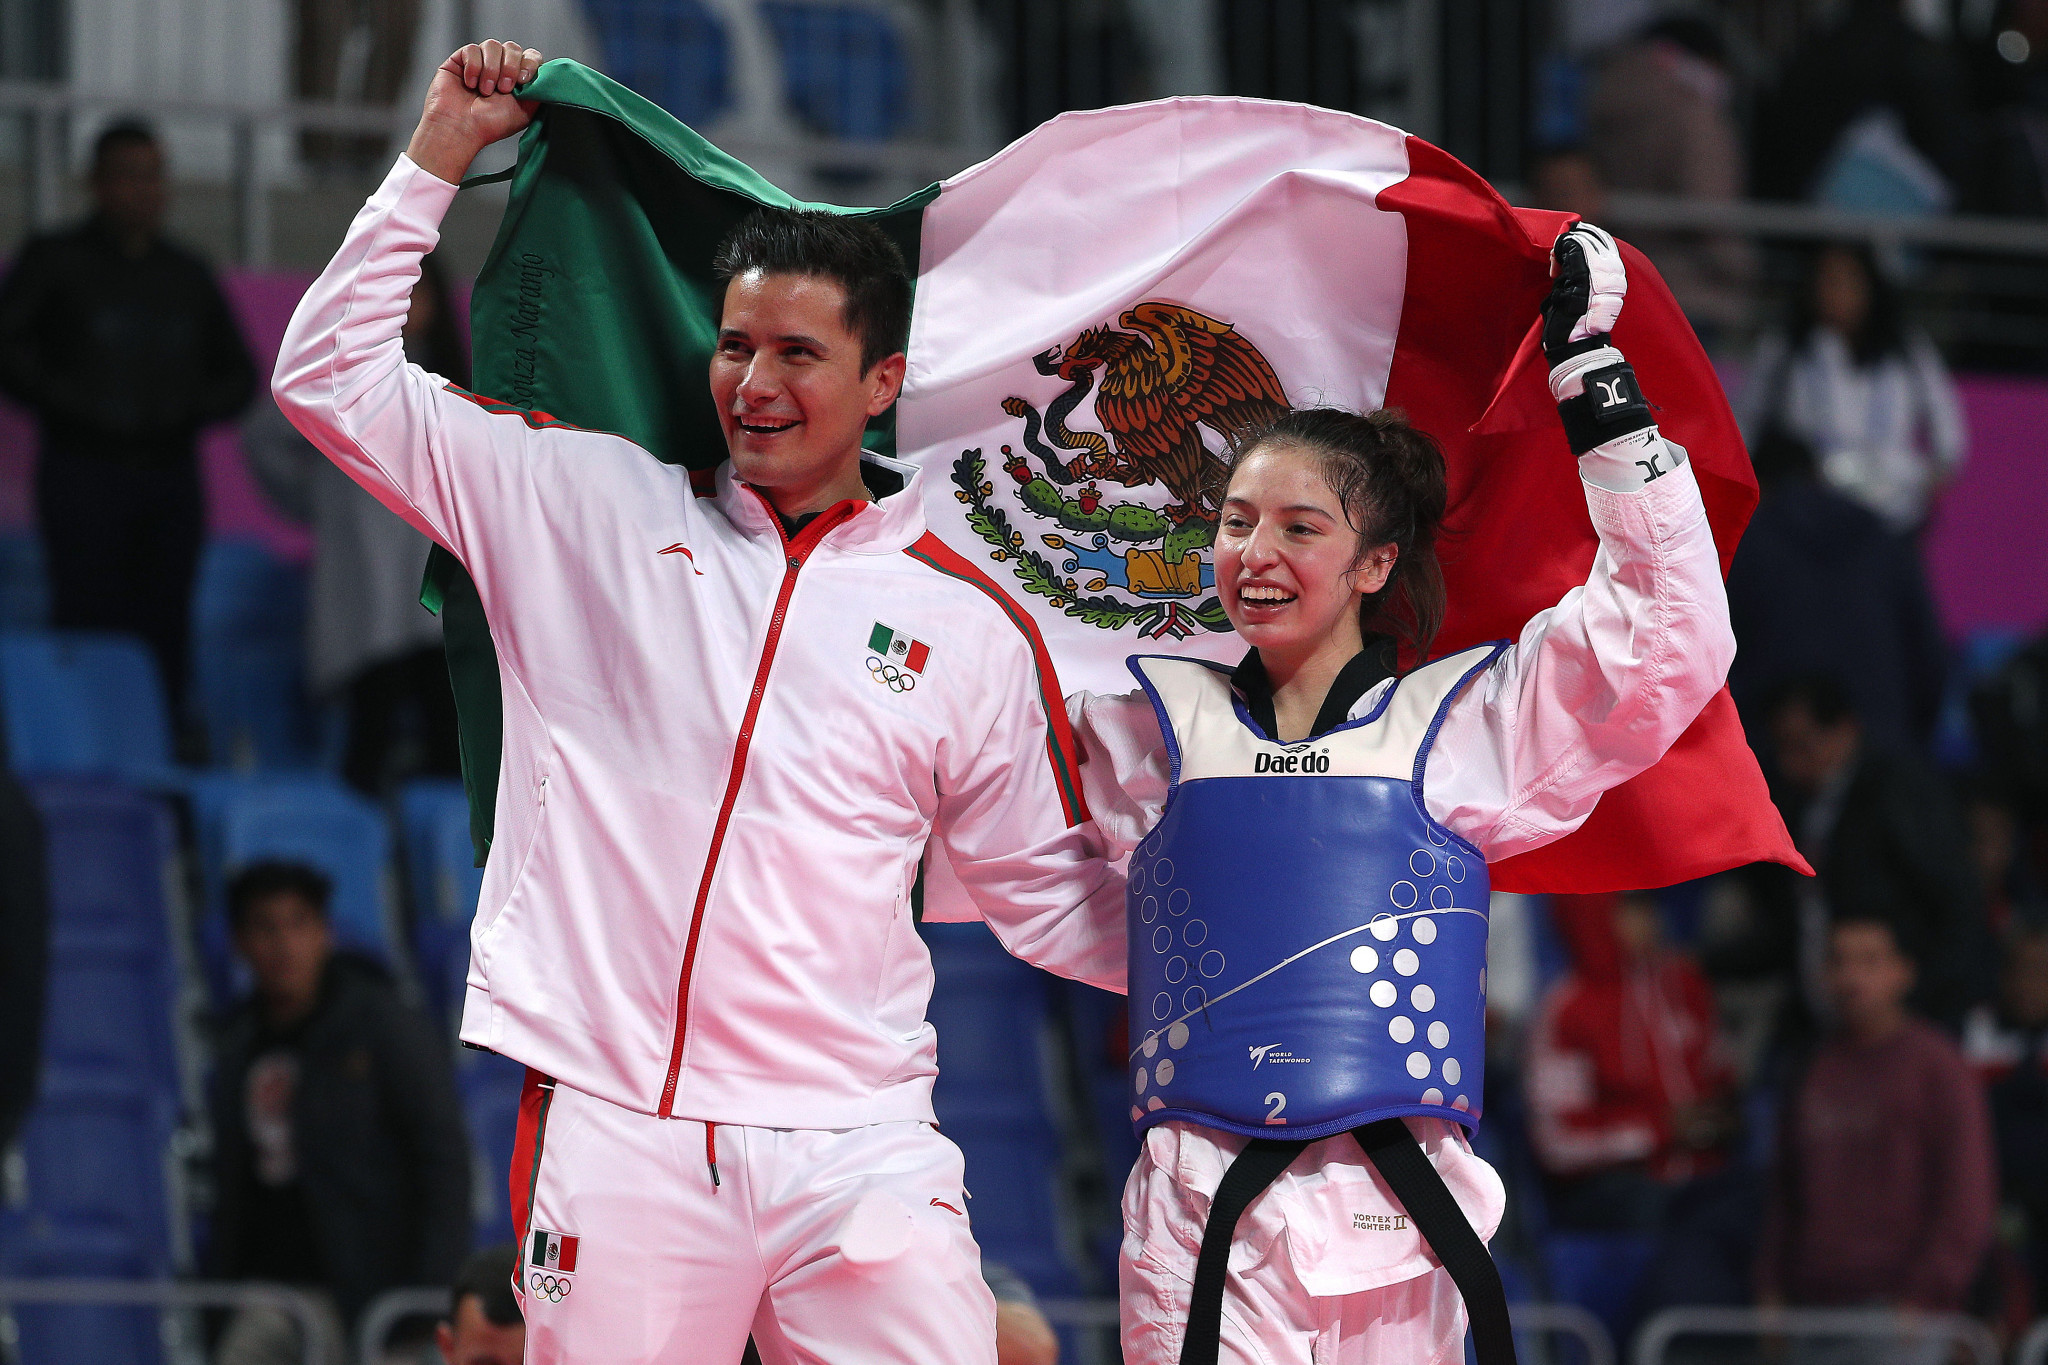 Daniela Souza won one of Mexico's four taekwondo gold medals at the Lima 2019 Pan American Games ©Getty Images